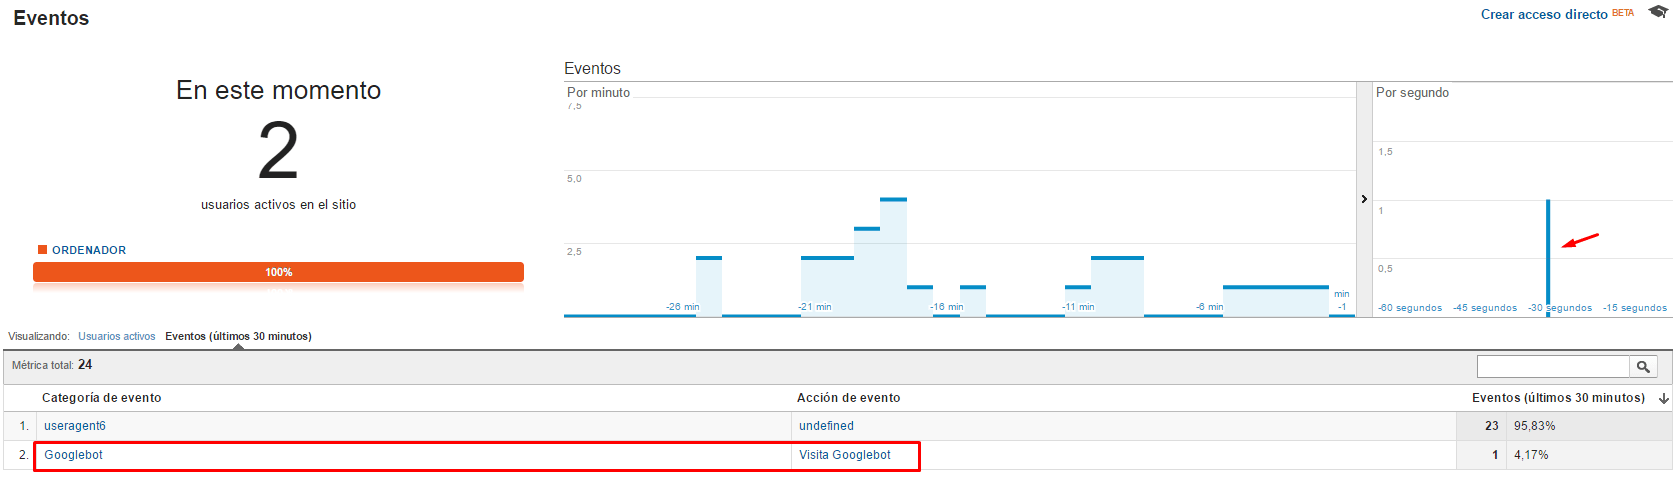 visita-googlebot-analytics